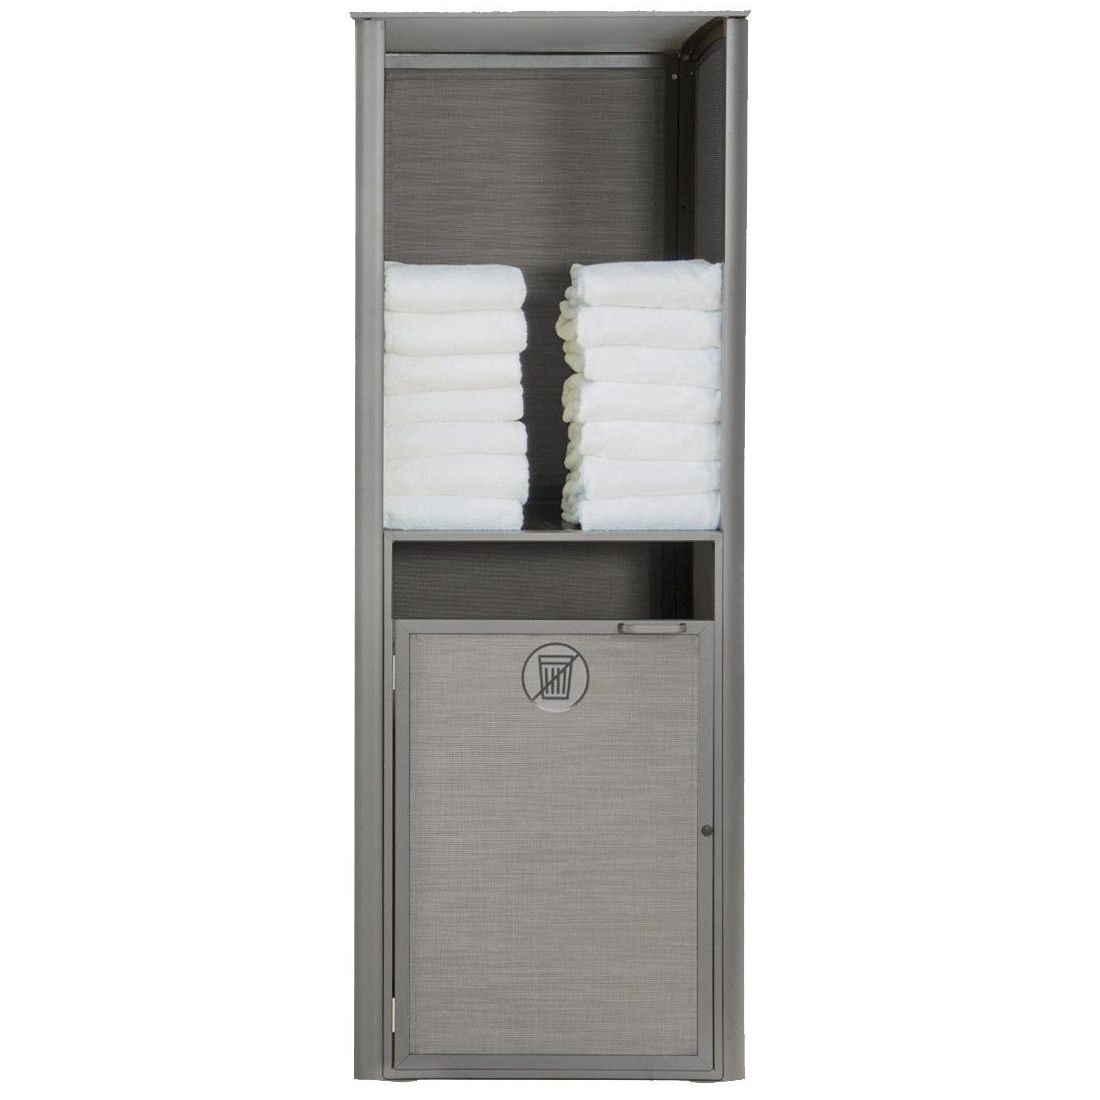 Grosfillex Sunset Towel Valet Single Unit in Solid Gray/Platinum Gray